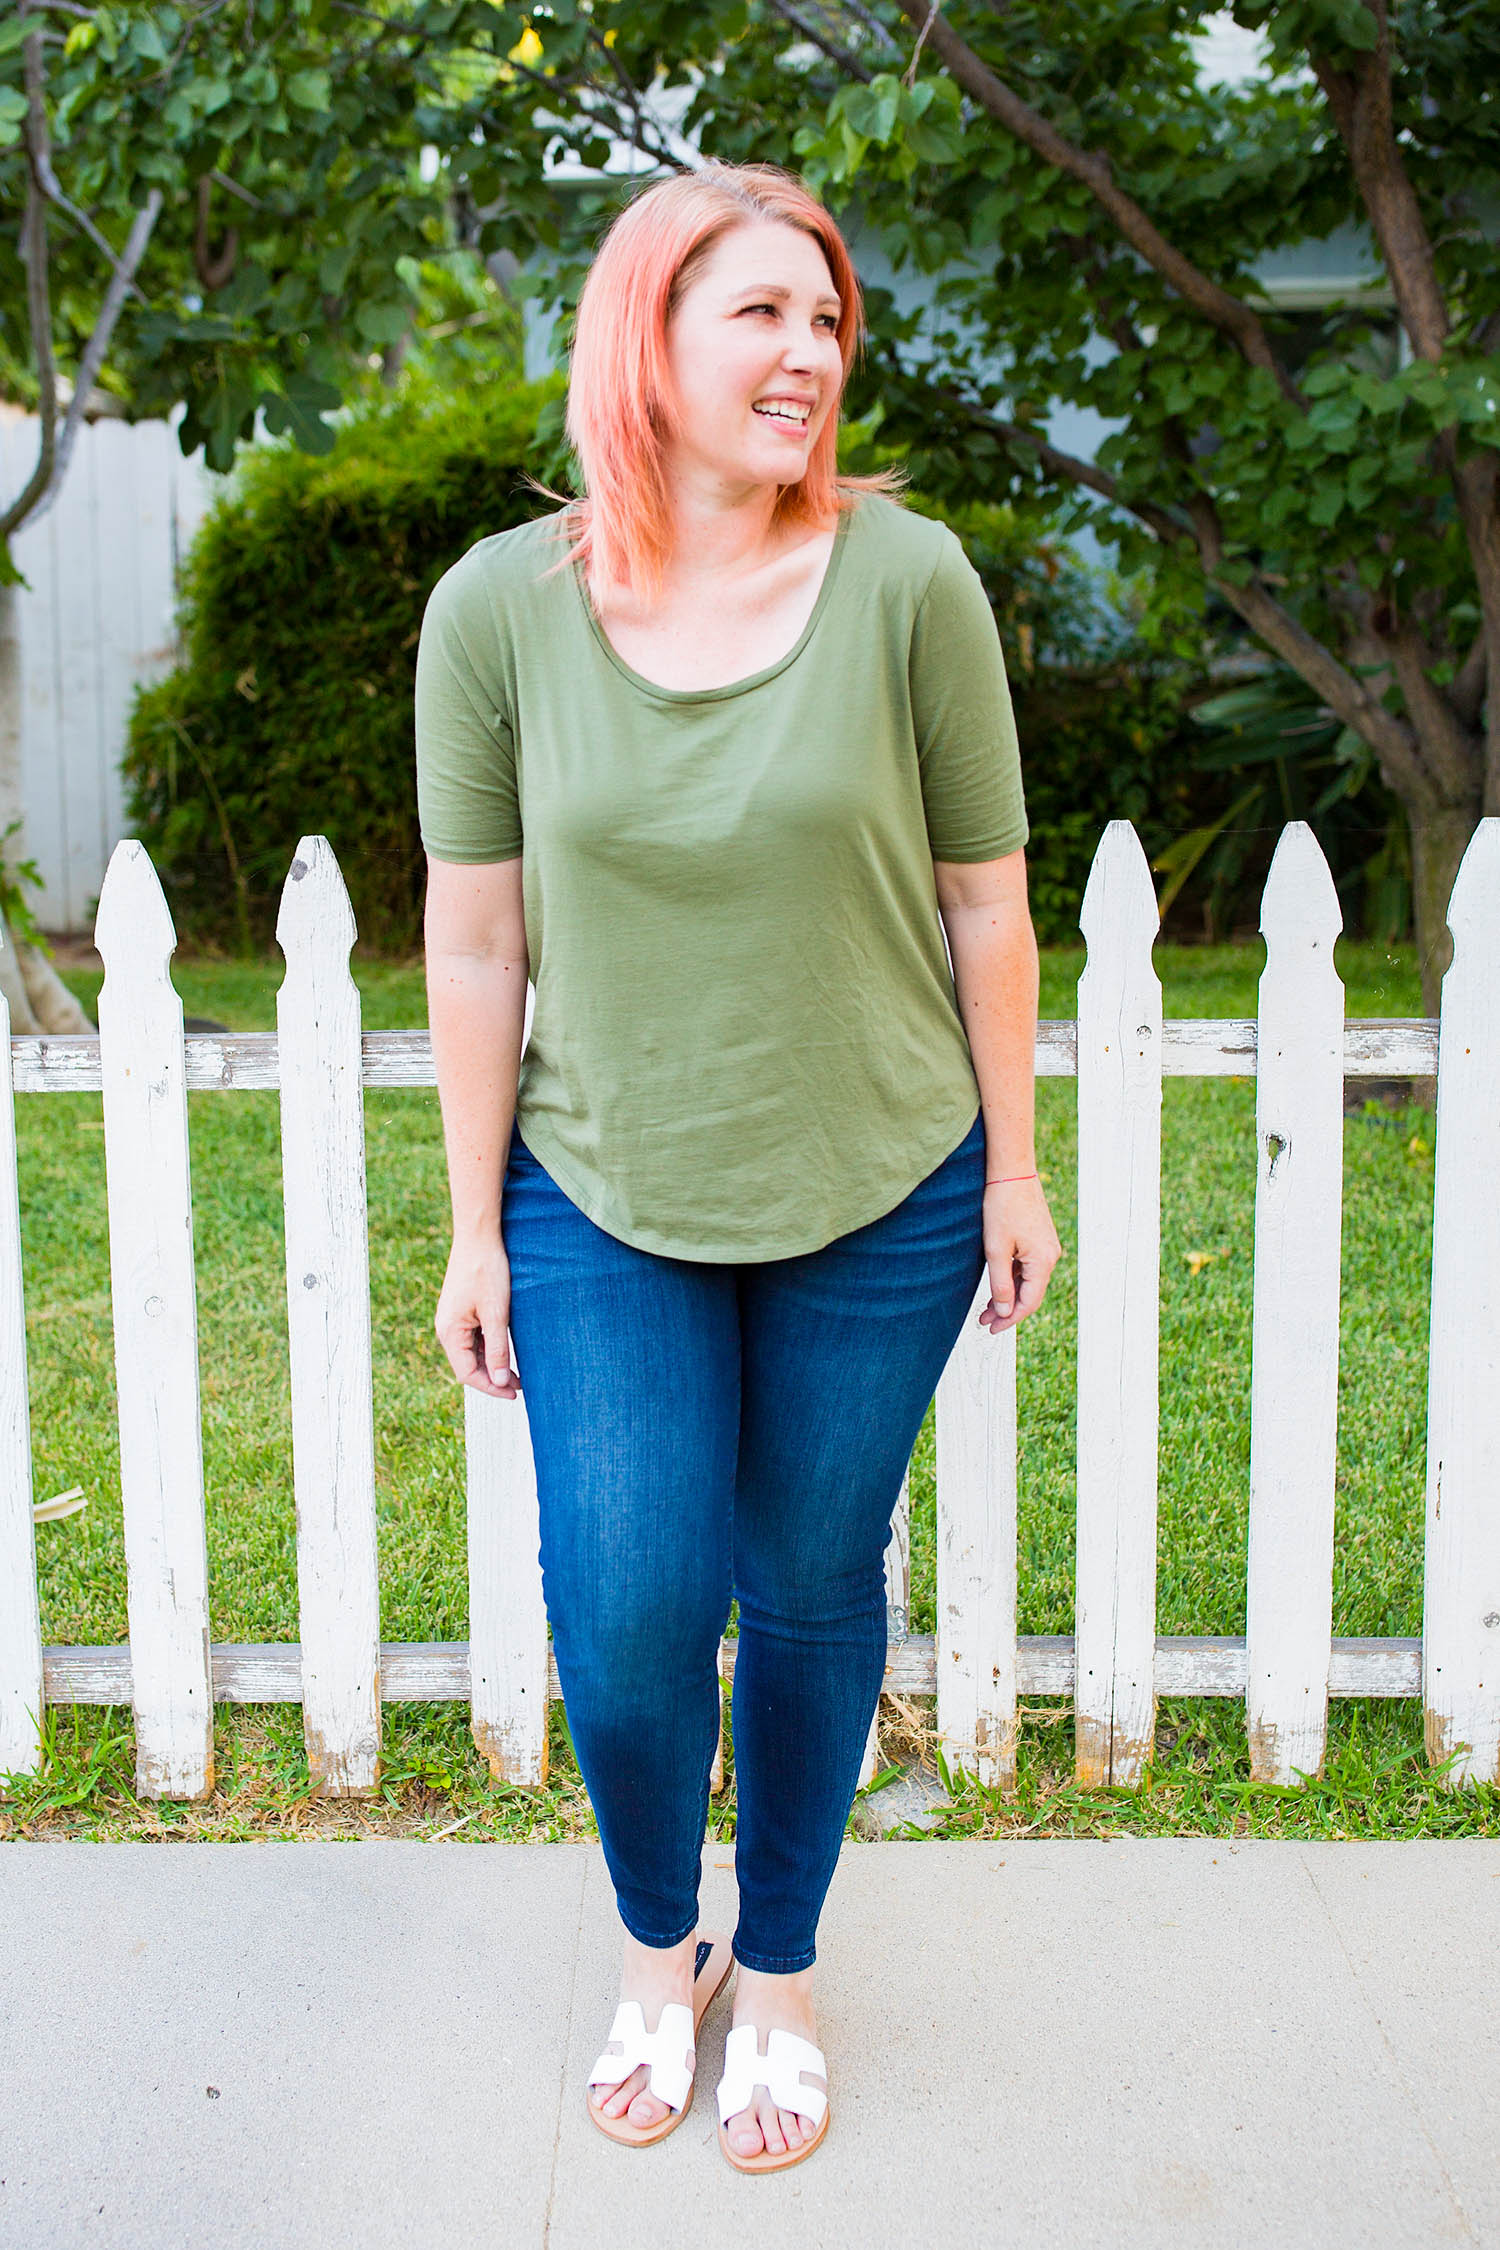 Nordstrom Anniversary Sale 2018: Fall outfits time is HERE, and these dark skinny jeans are a GREAT price!